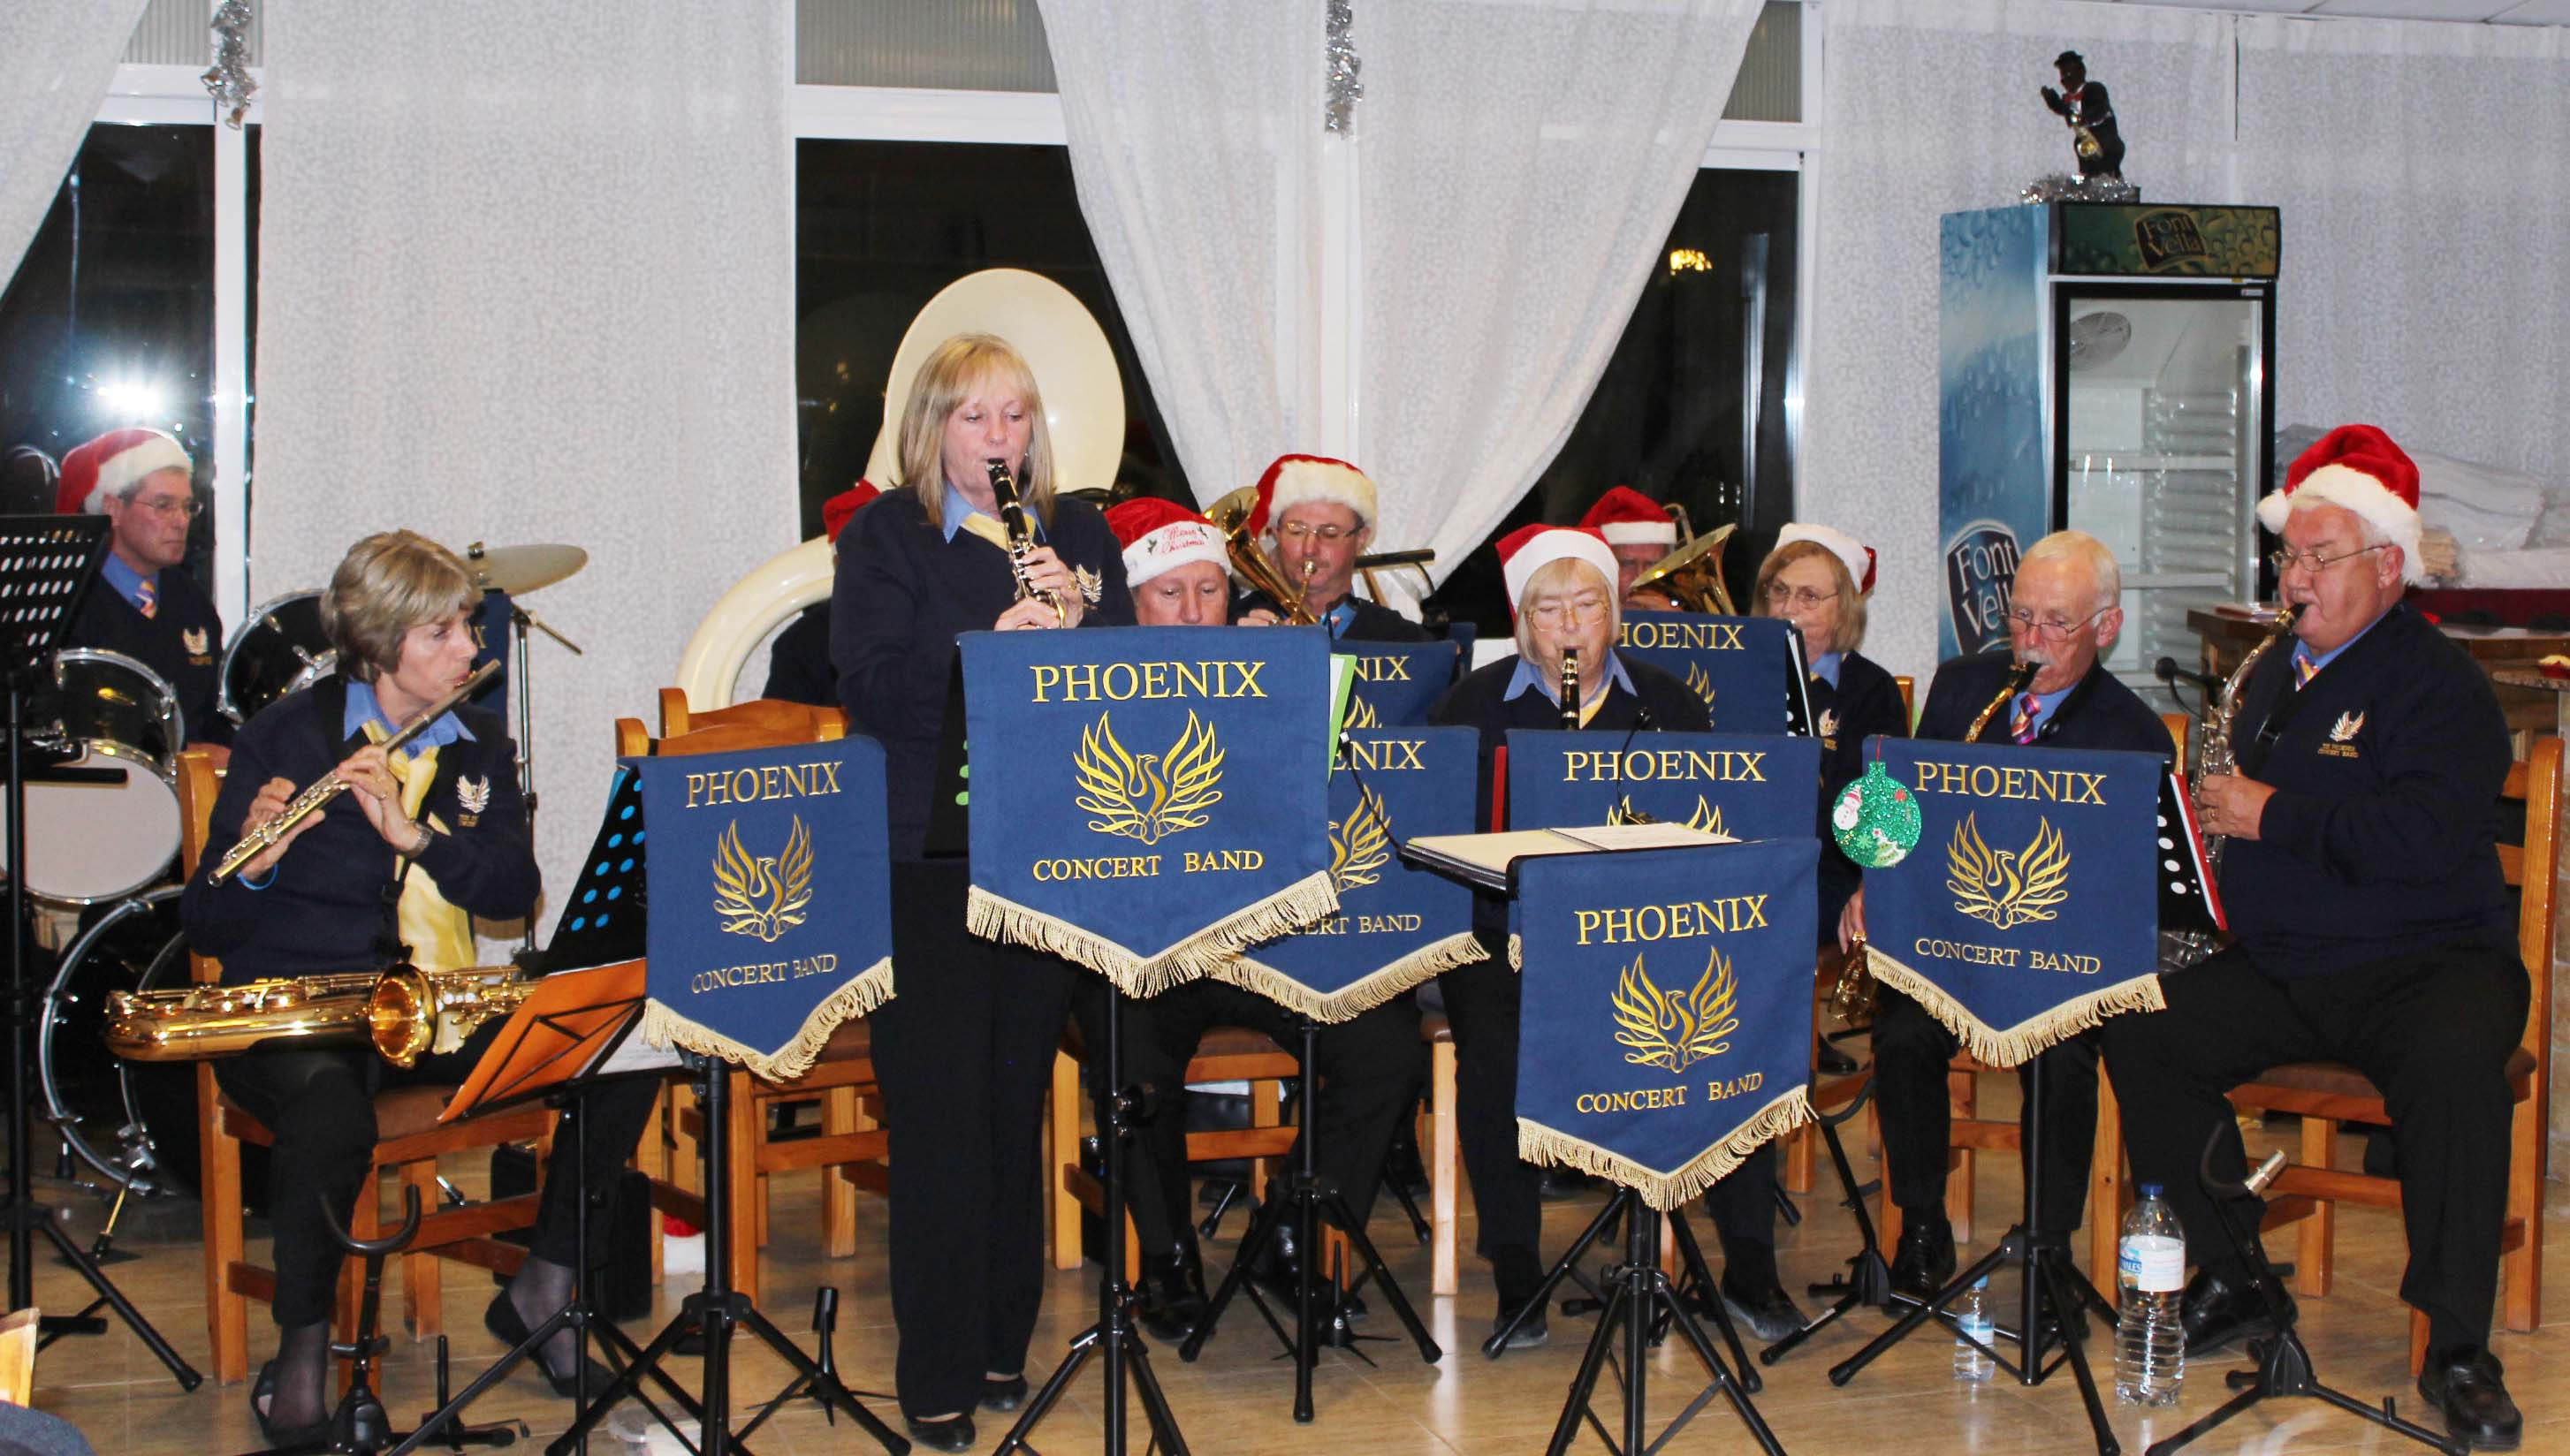 The Phoenix Concert Band